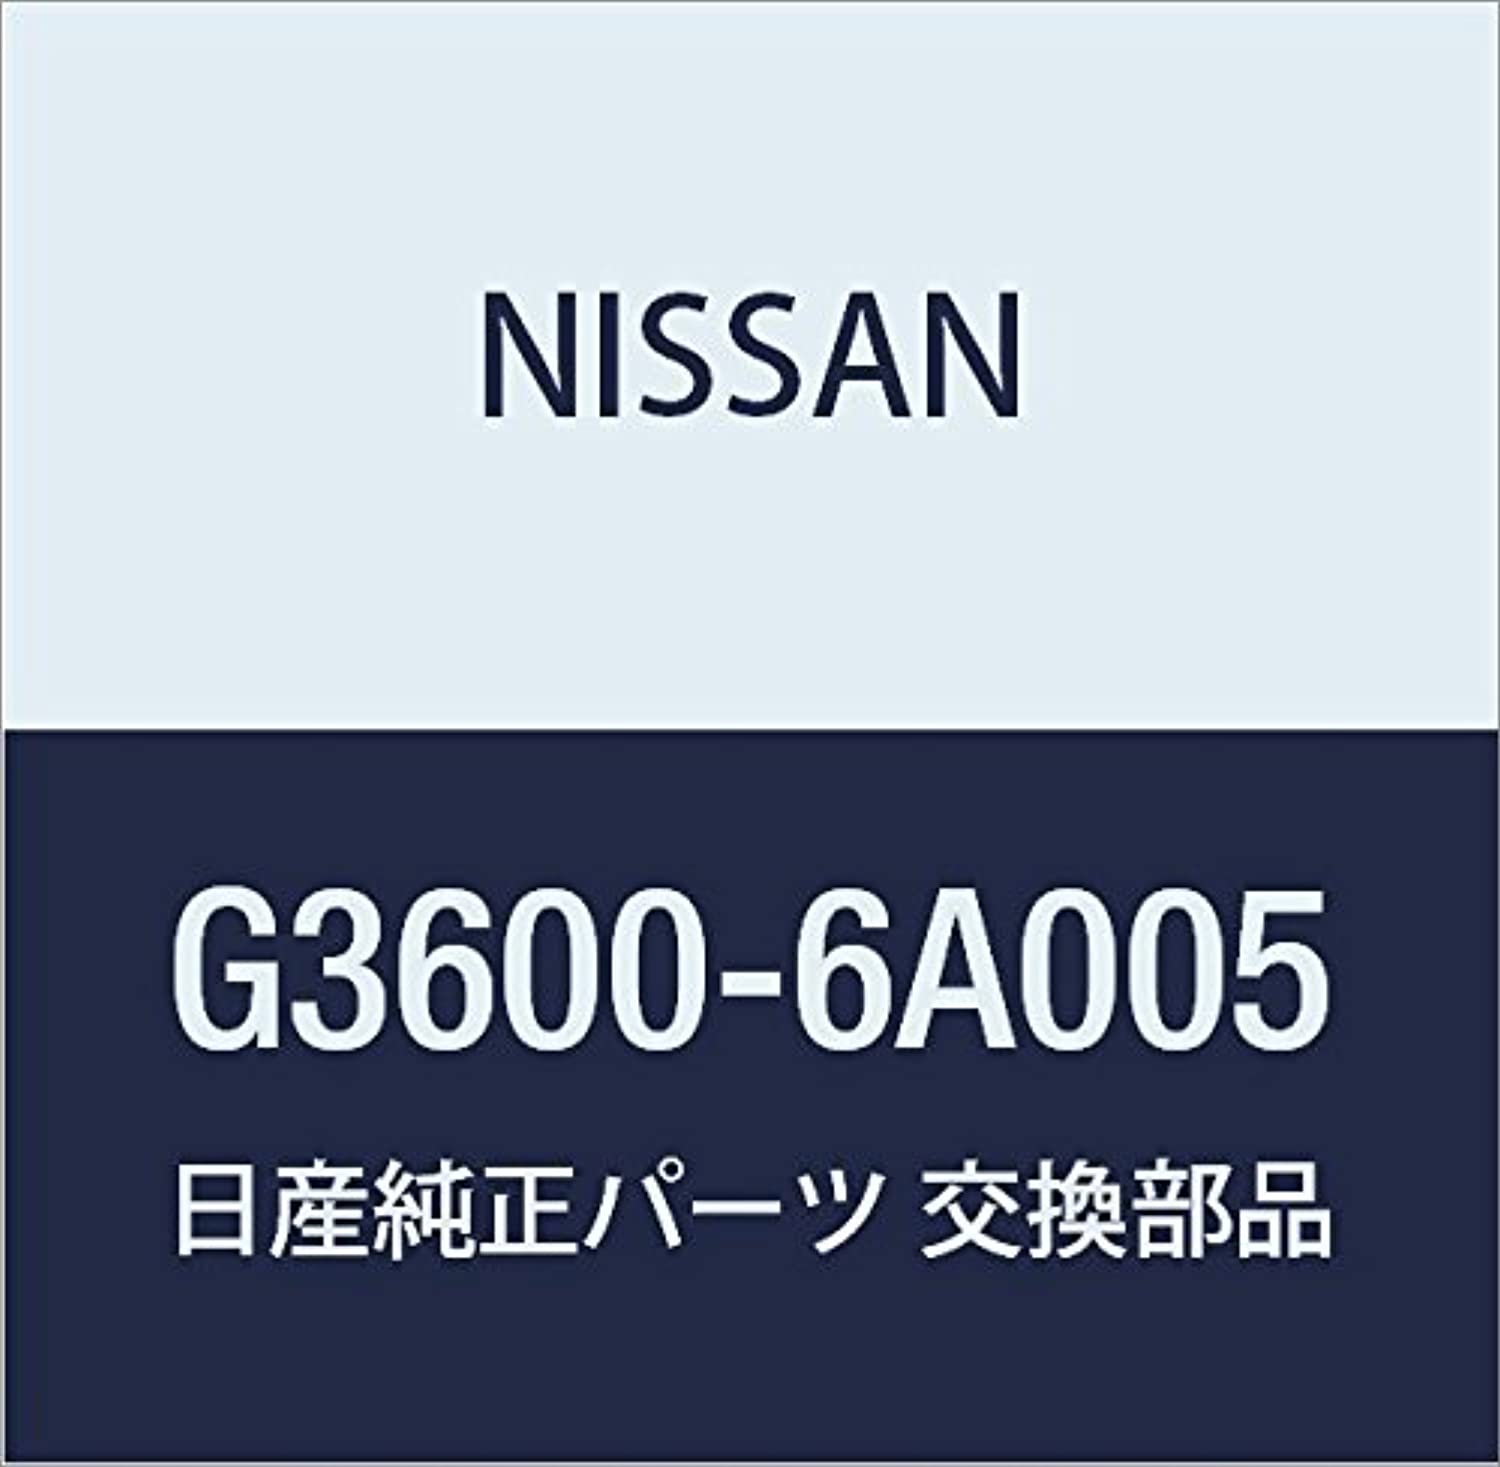 NISSAN(ニッサン)日産純正部品ベース ラックキット G3600-6A005